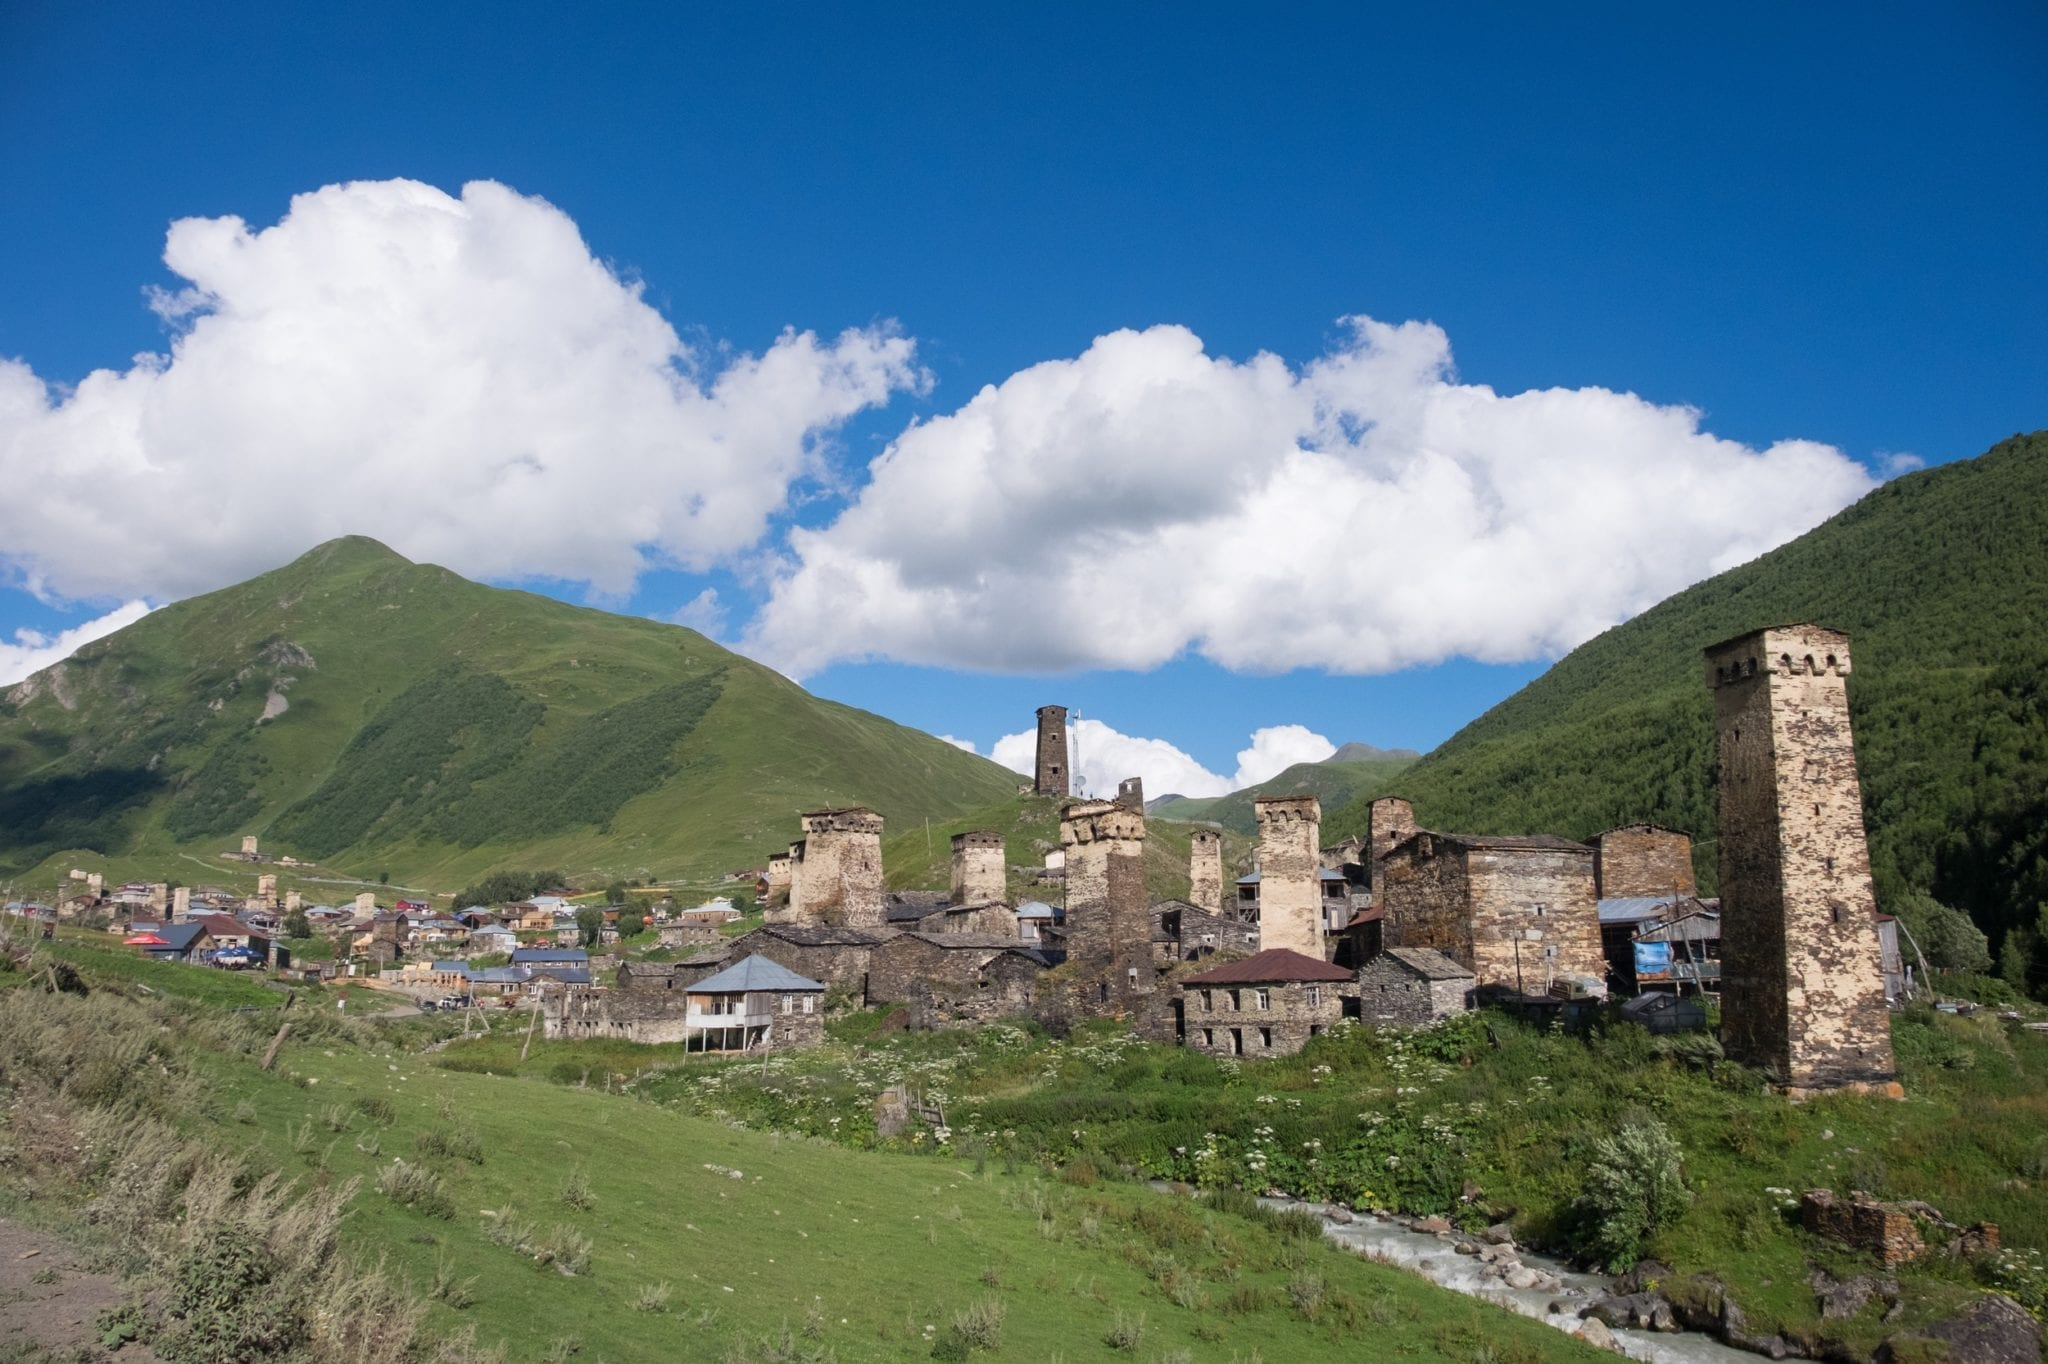 On the right, the village of Chazhashi in Ushguli, stone towers pointing into the air. In the background are green grassy mountains underneath a blue sky with clouds,